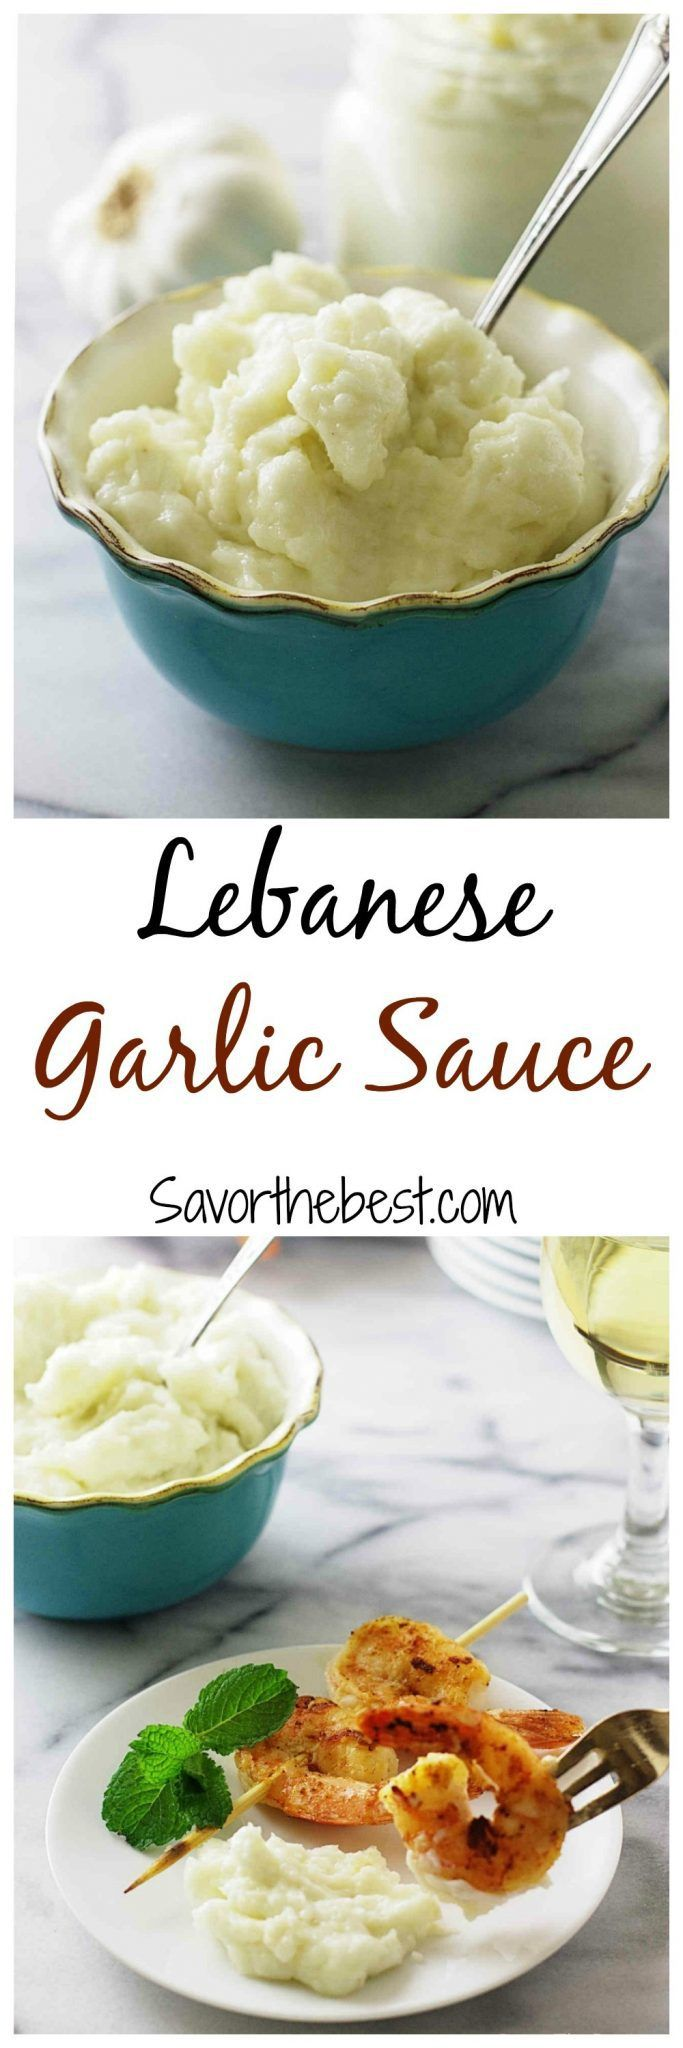 Lebanese garlic sauce       30 large garlic cloves, about 1 cup     1 teaspoon salt     ¼ cup lemon juice     3 cups oil, avocado, vegetable, canola, peanut or corn (do not use olive oil or sesame oil)